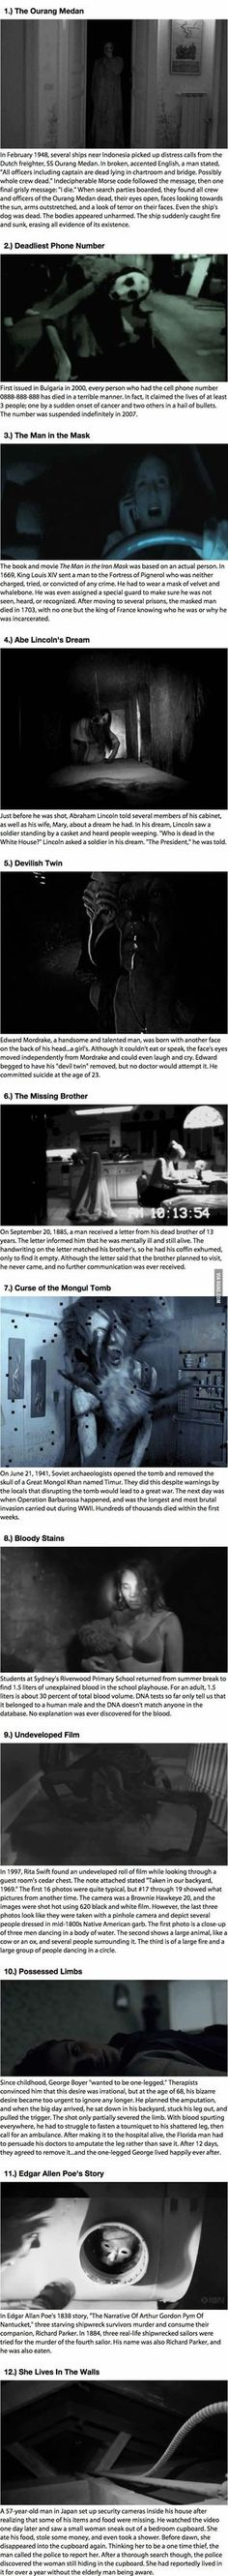 You are soon going to regret reading these 12 Creepy Stories!: